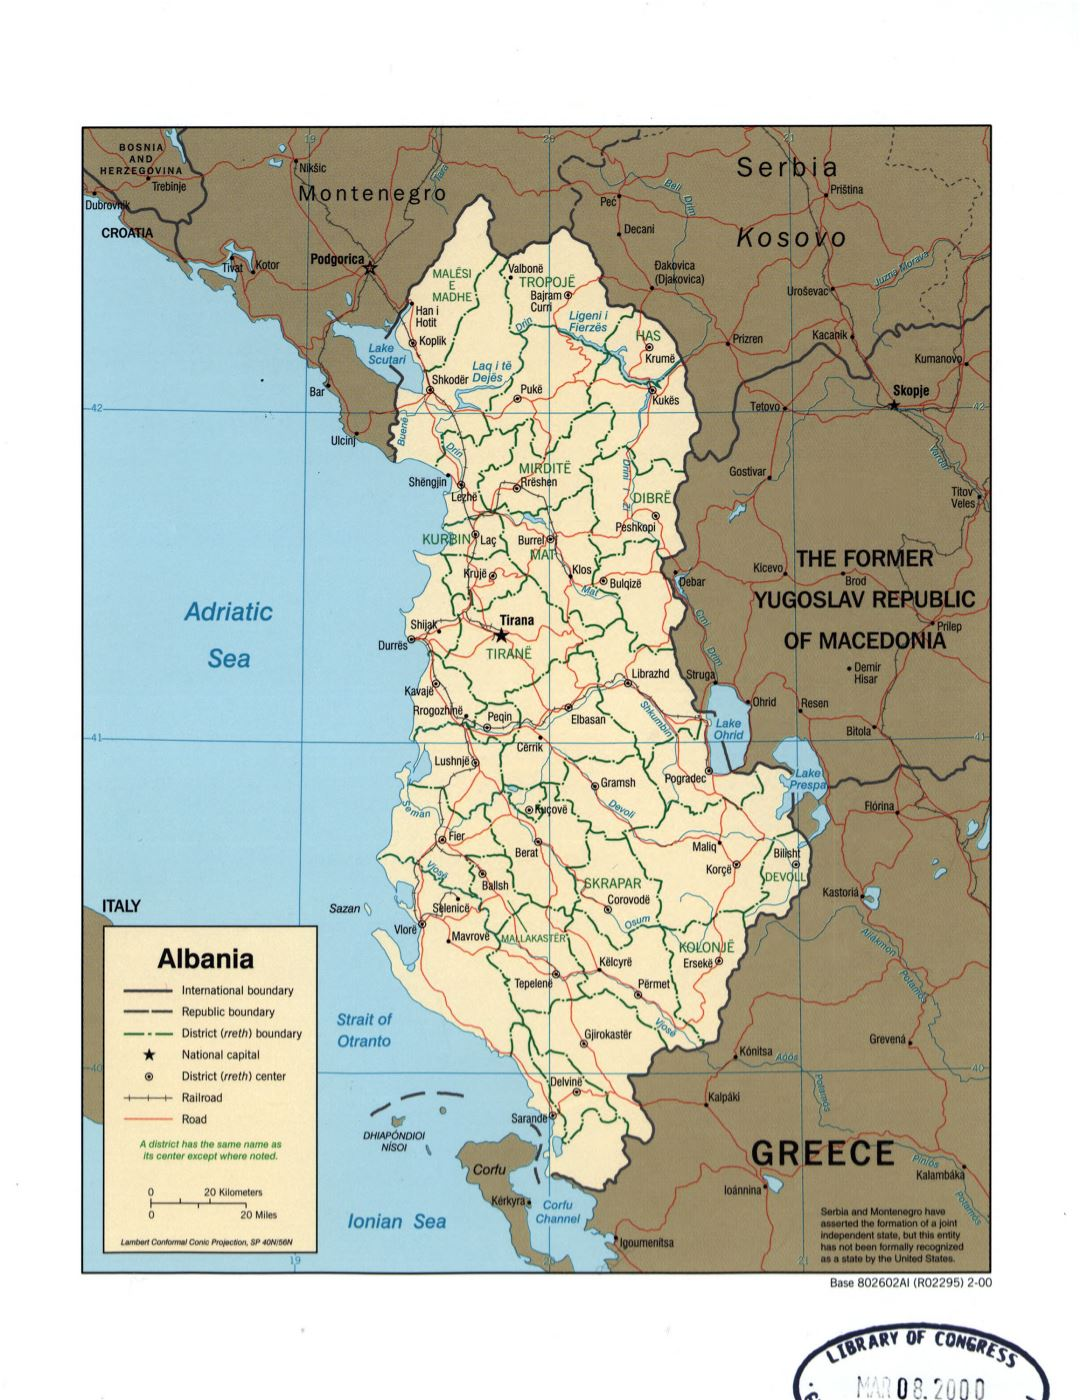 Large detail political and administrative map of Albania with marks of major cities, roads and railroads - 2000